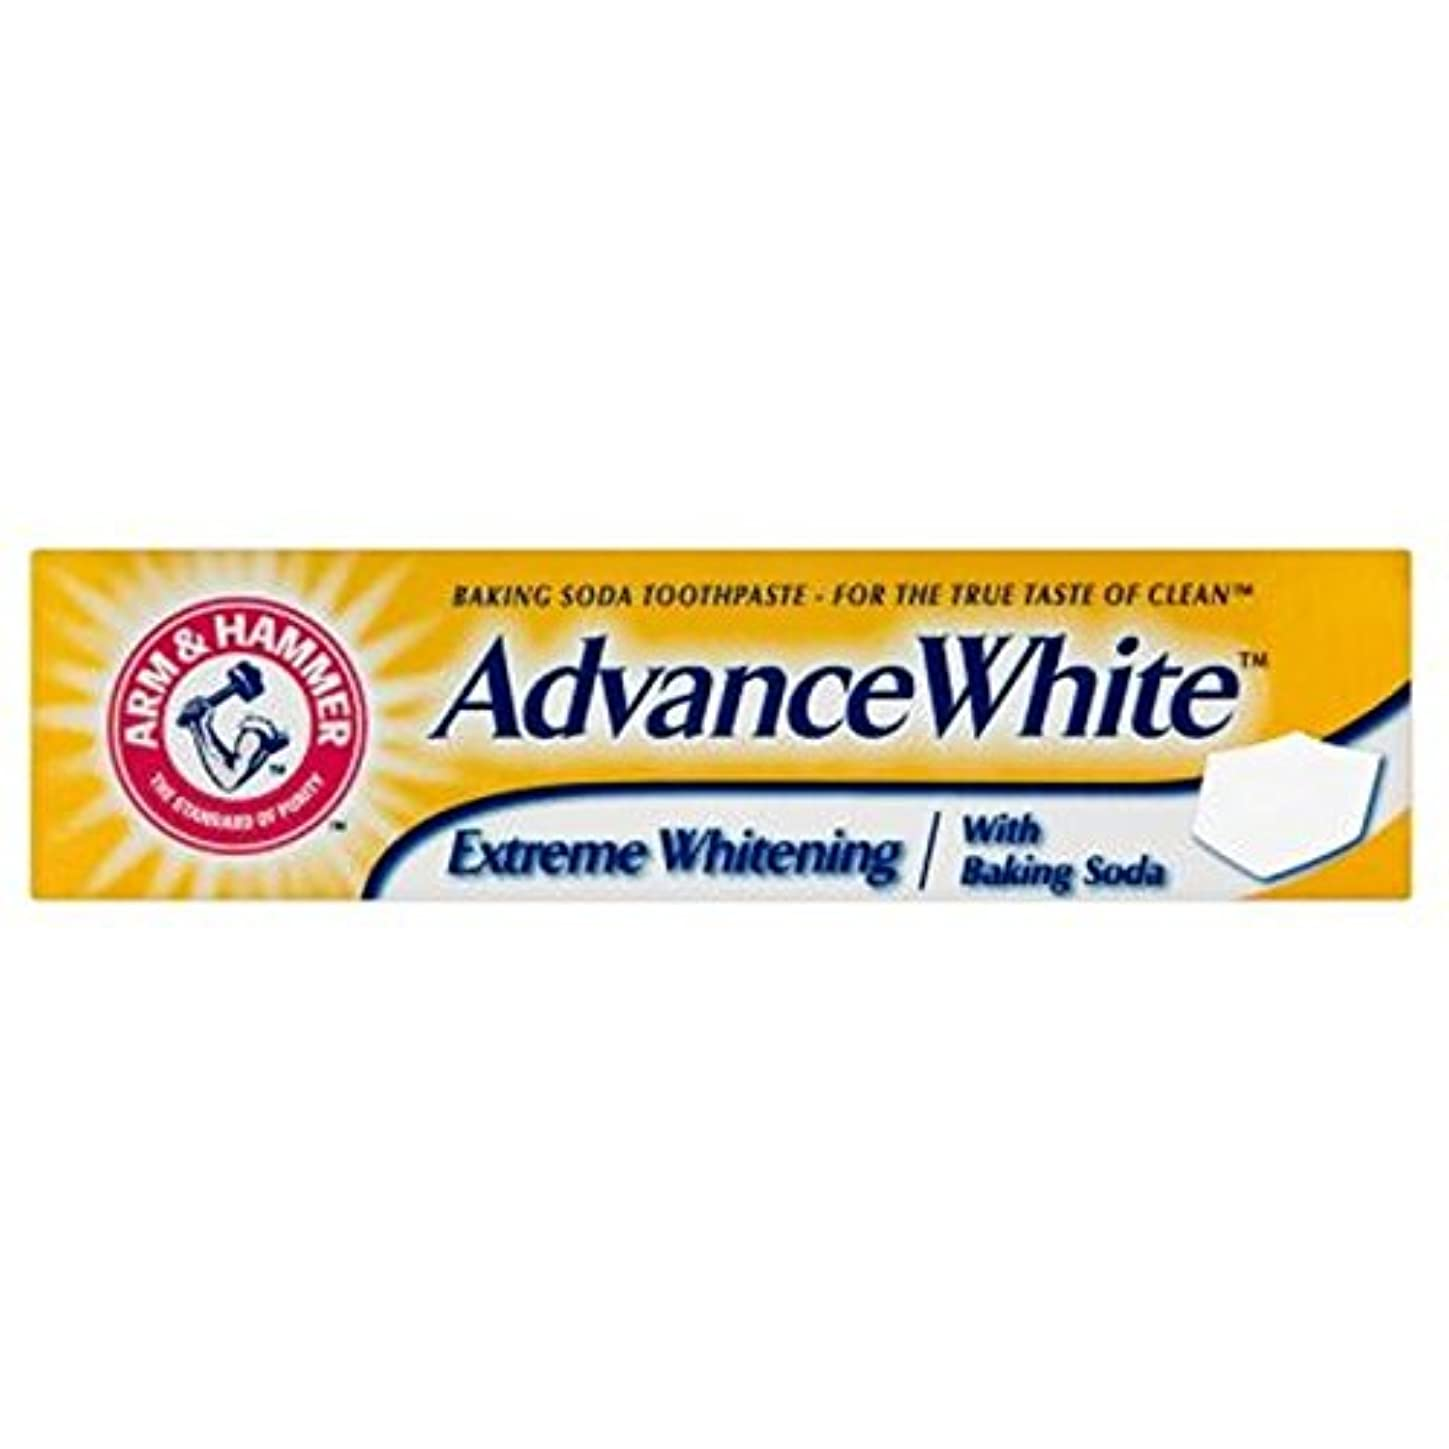 Arm & Hammer Advance White Extreme Whitening Baking Soda Toothpaste 75ml - 重曹歯磨き粉75ミリリットルをホワイトニングアーム&ハンマー事前白極端...